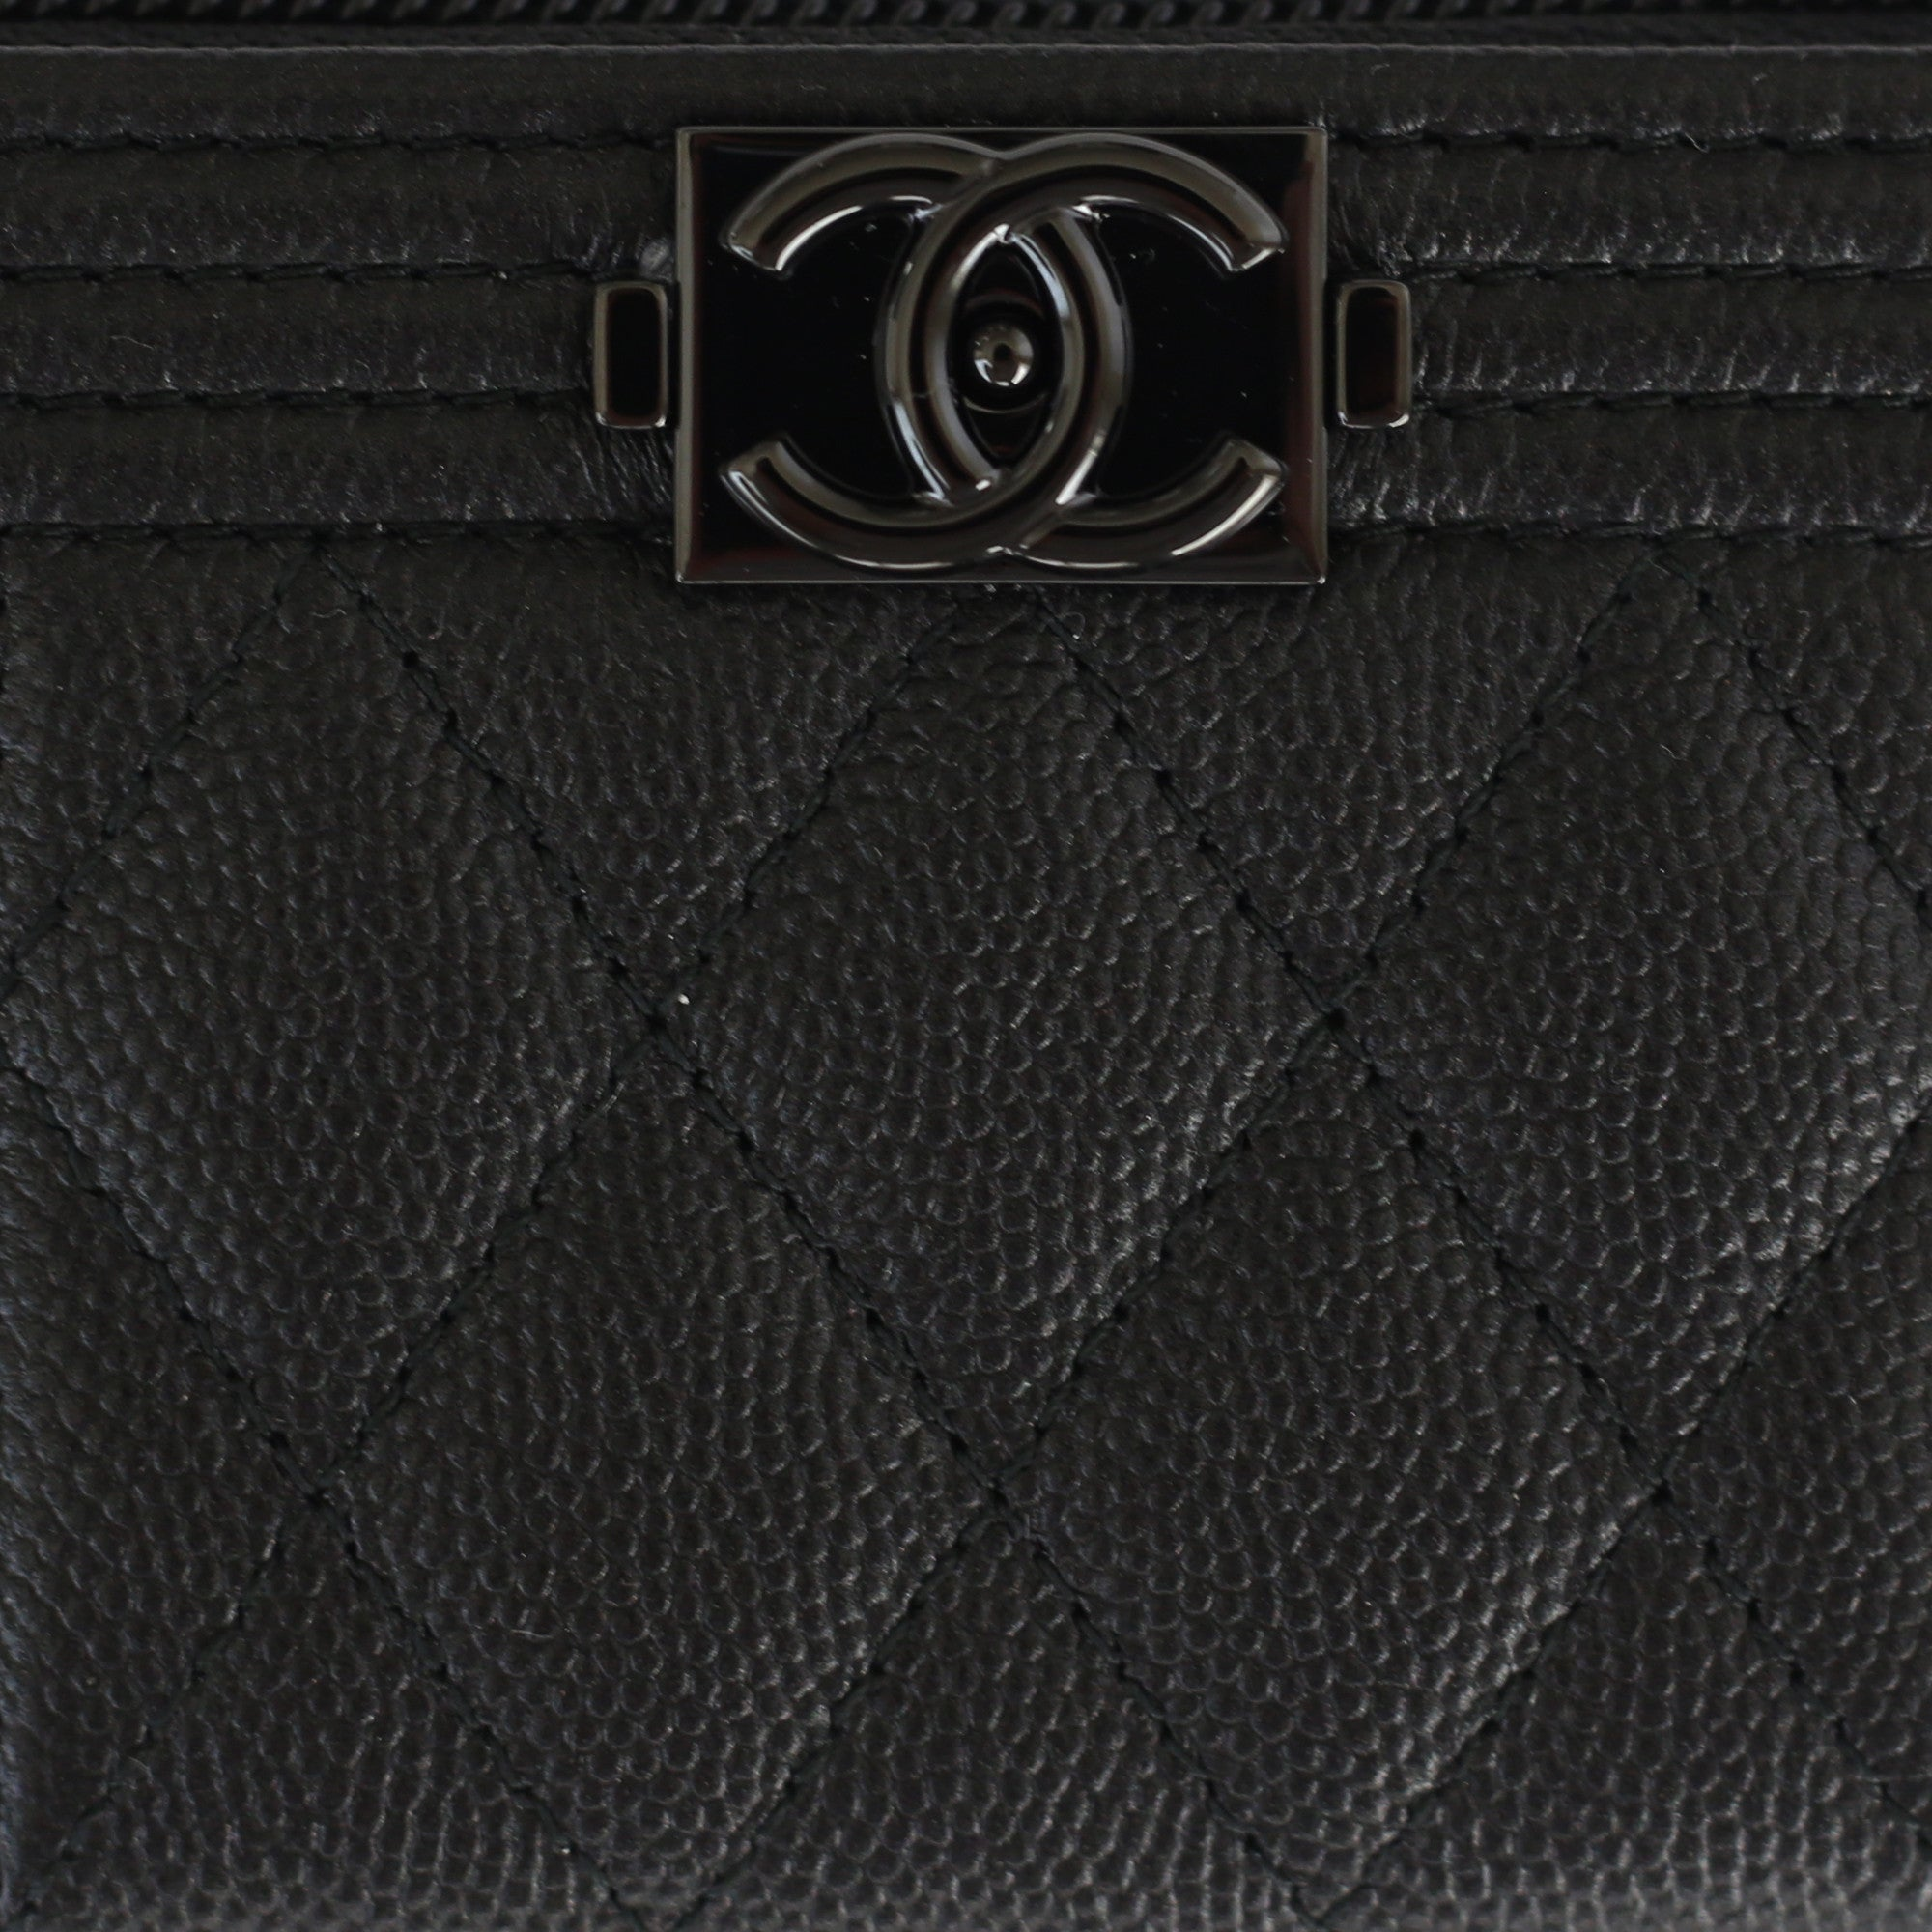 5a525d5b1003 Chanel | So Black Caviar Boy Coin Pouch | One-Size - The-Collectory